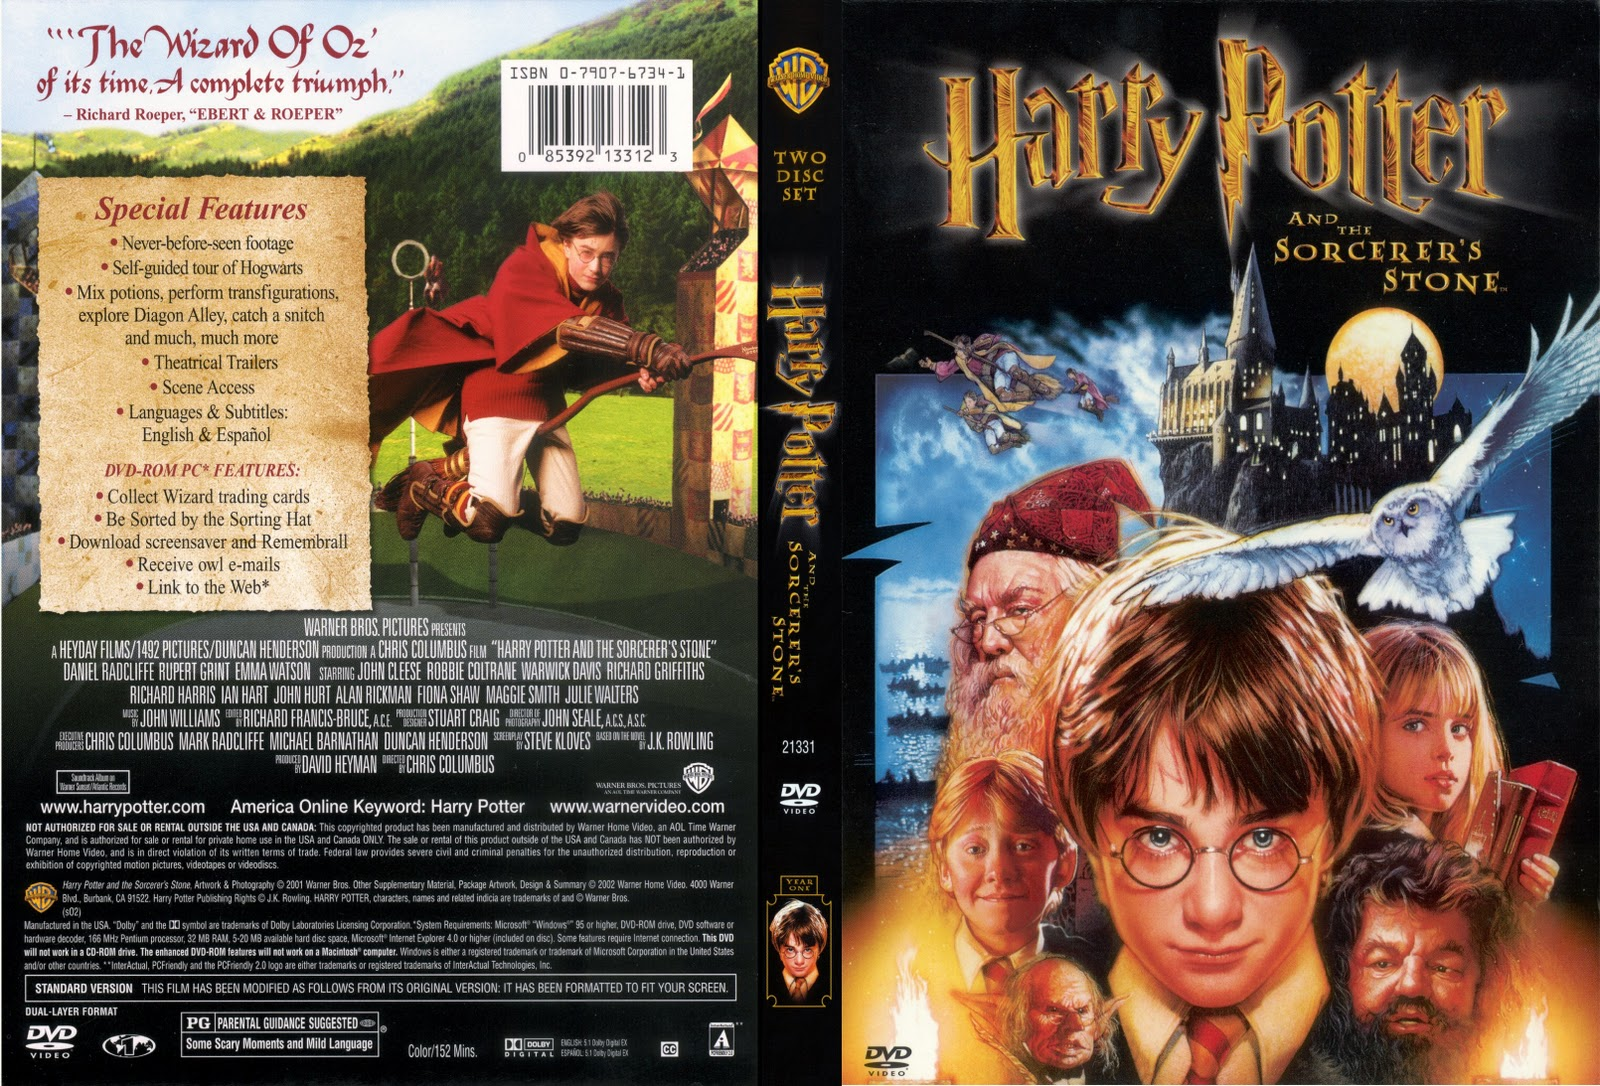 harry potter and the sorcerers stone movie free download torrent